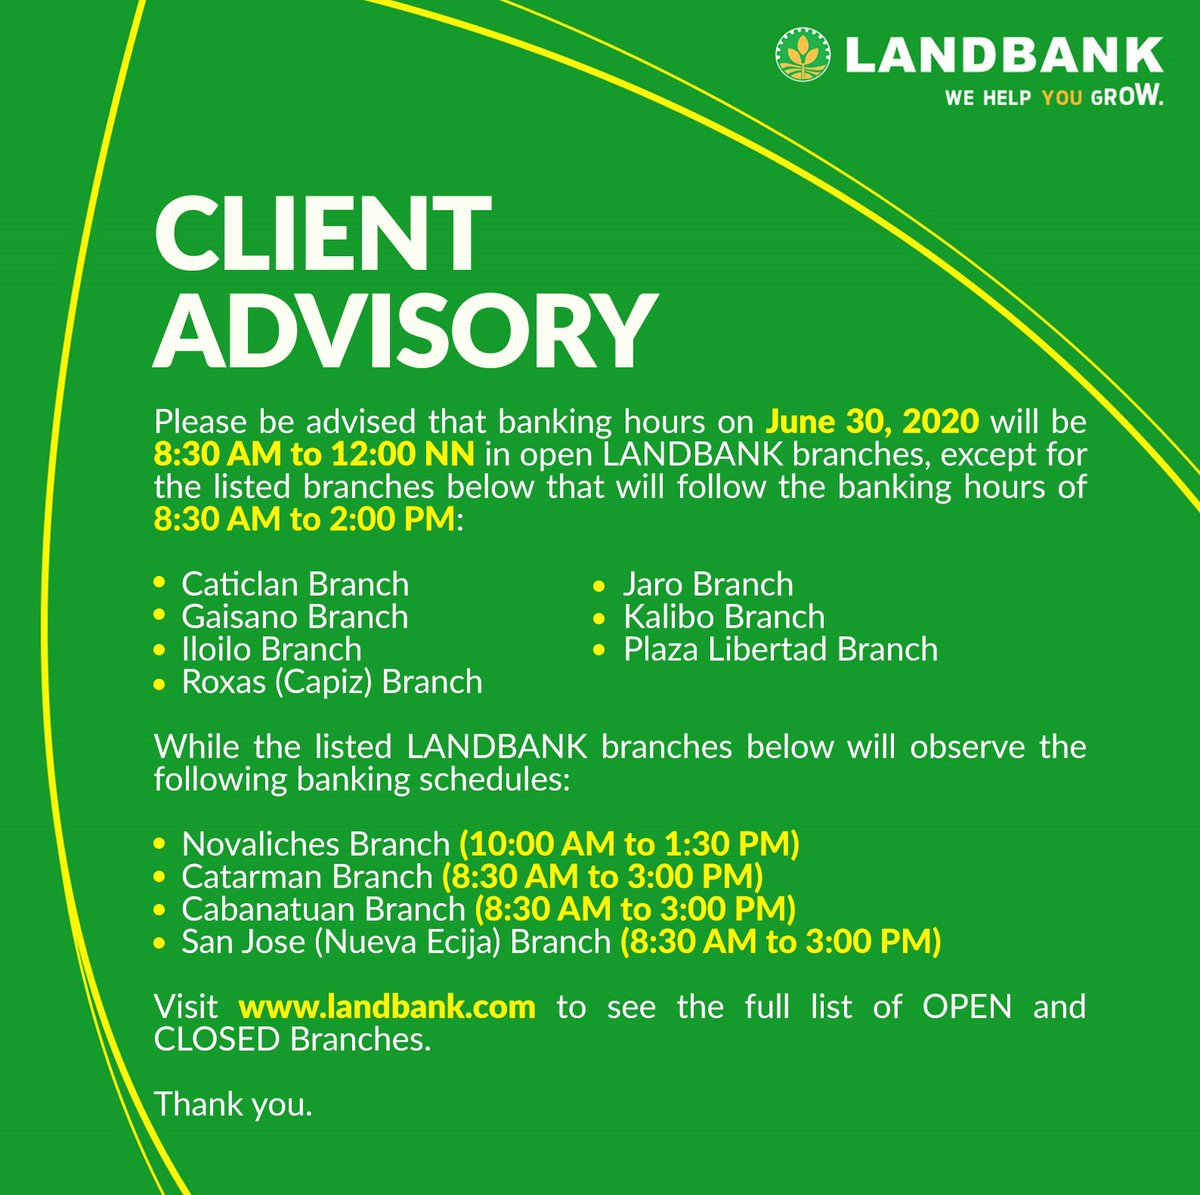 #LANDBANKClientAdvisory  To see the full list of OPEN branches, visit https://t.co/CQXHk1o70d  To see the full list of CLOSED branches, visit https://t.co/omgy6M6P7O https://t.co/4OKRdwnsKX